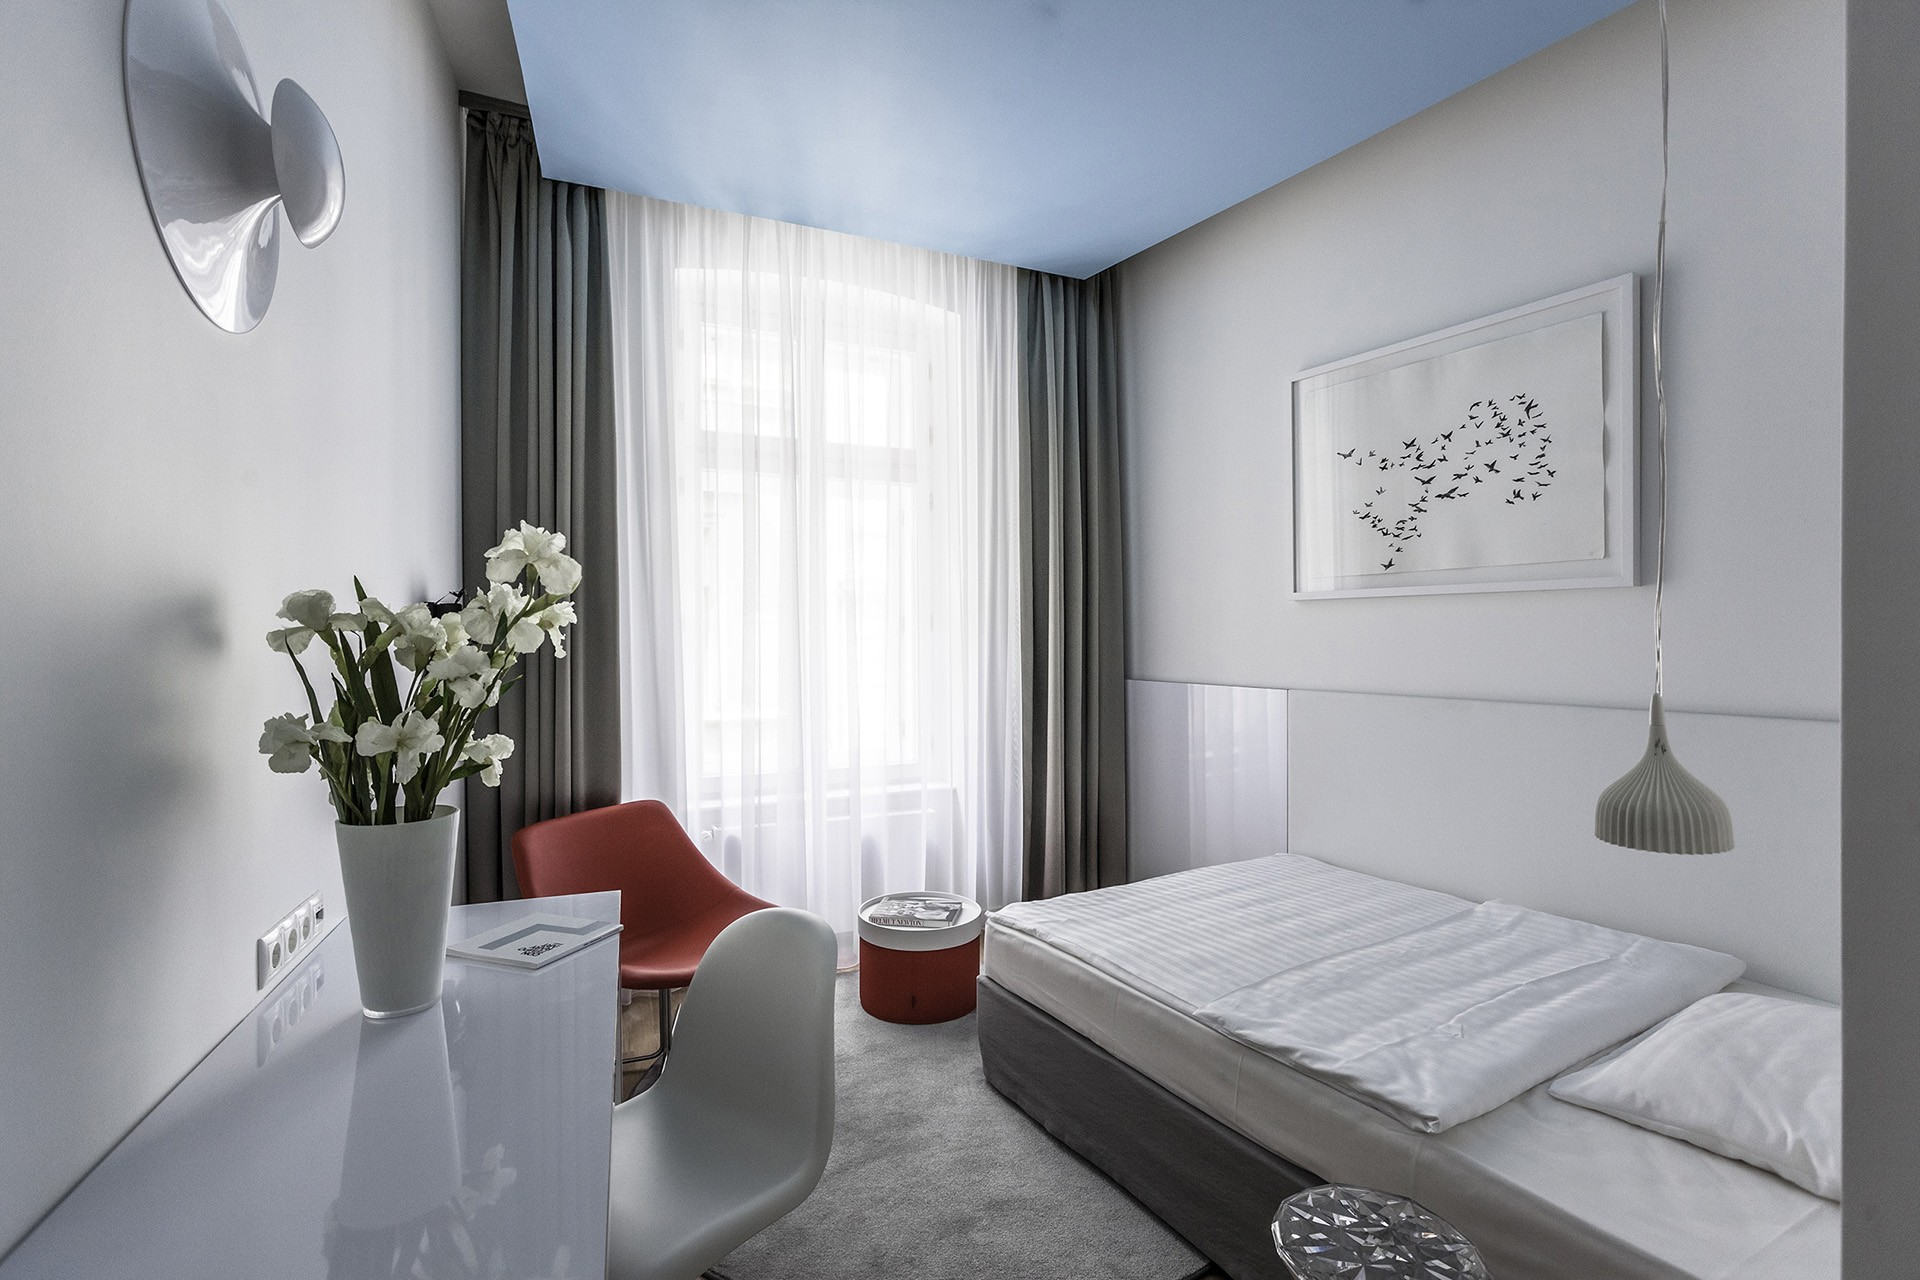 Casati budapest hotel heaven rooms official website for Design hotel budapest